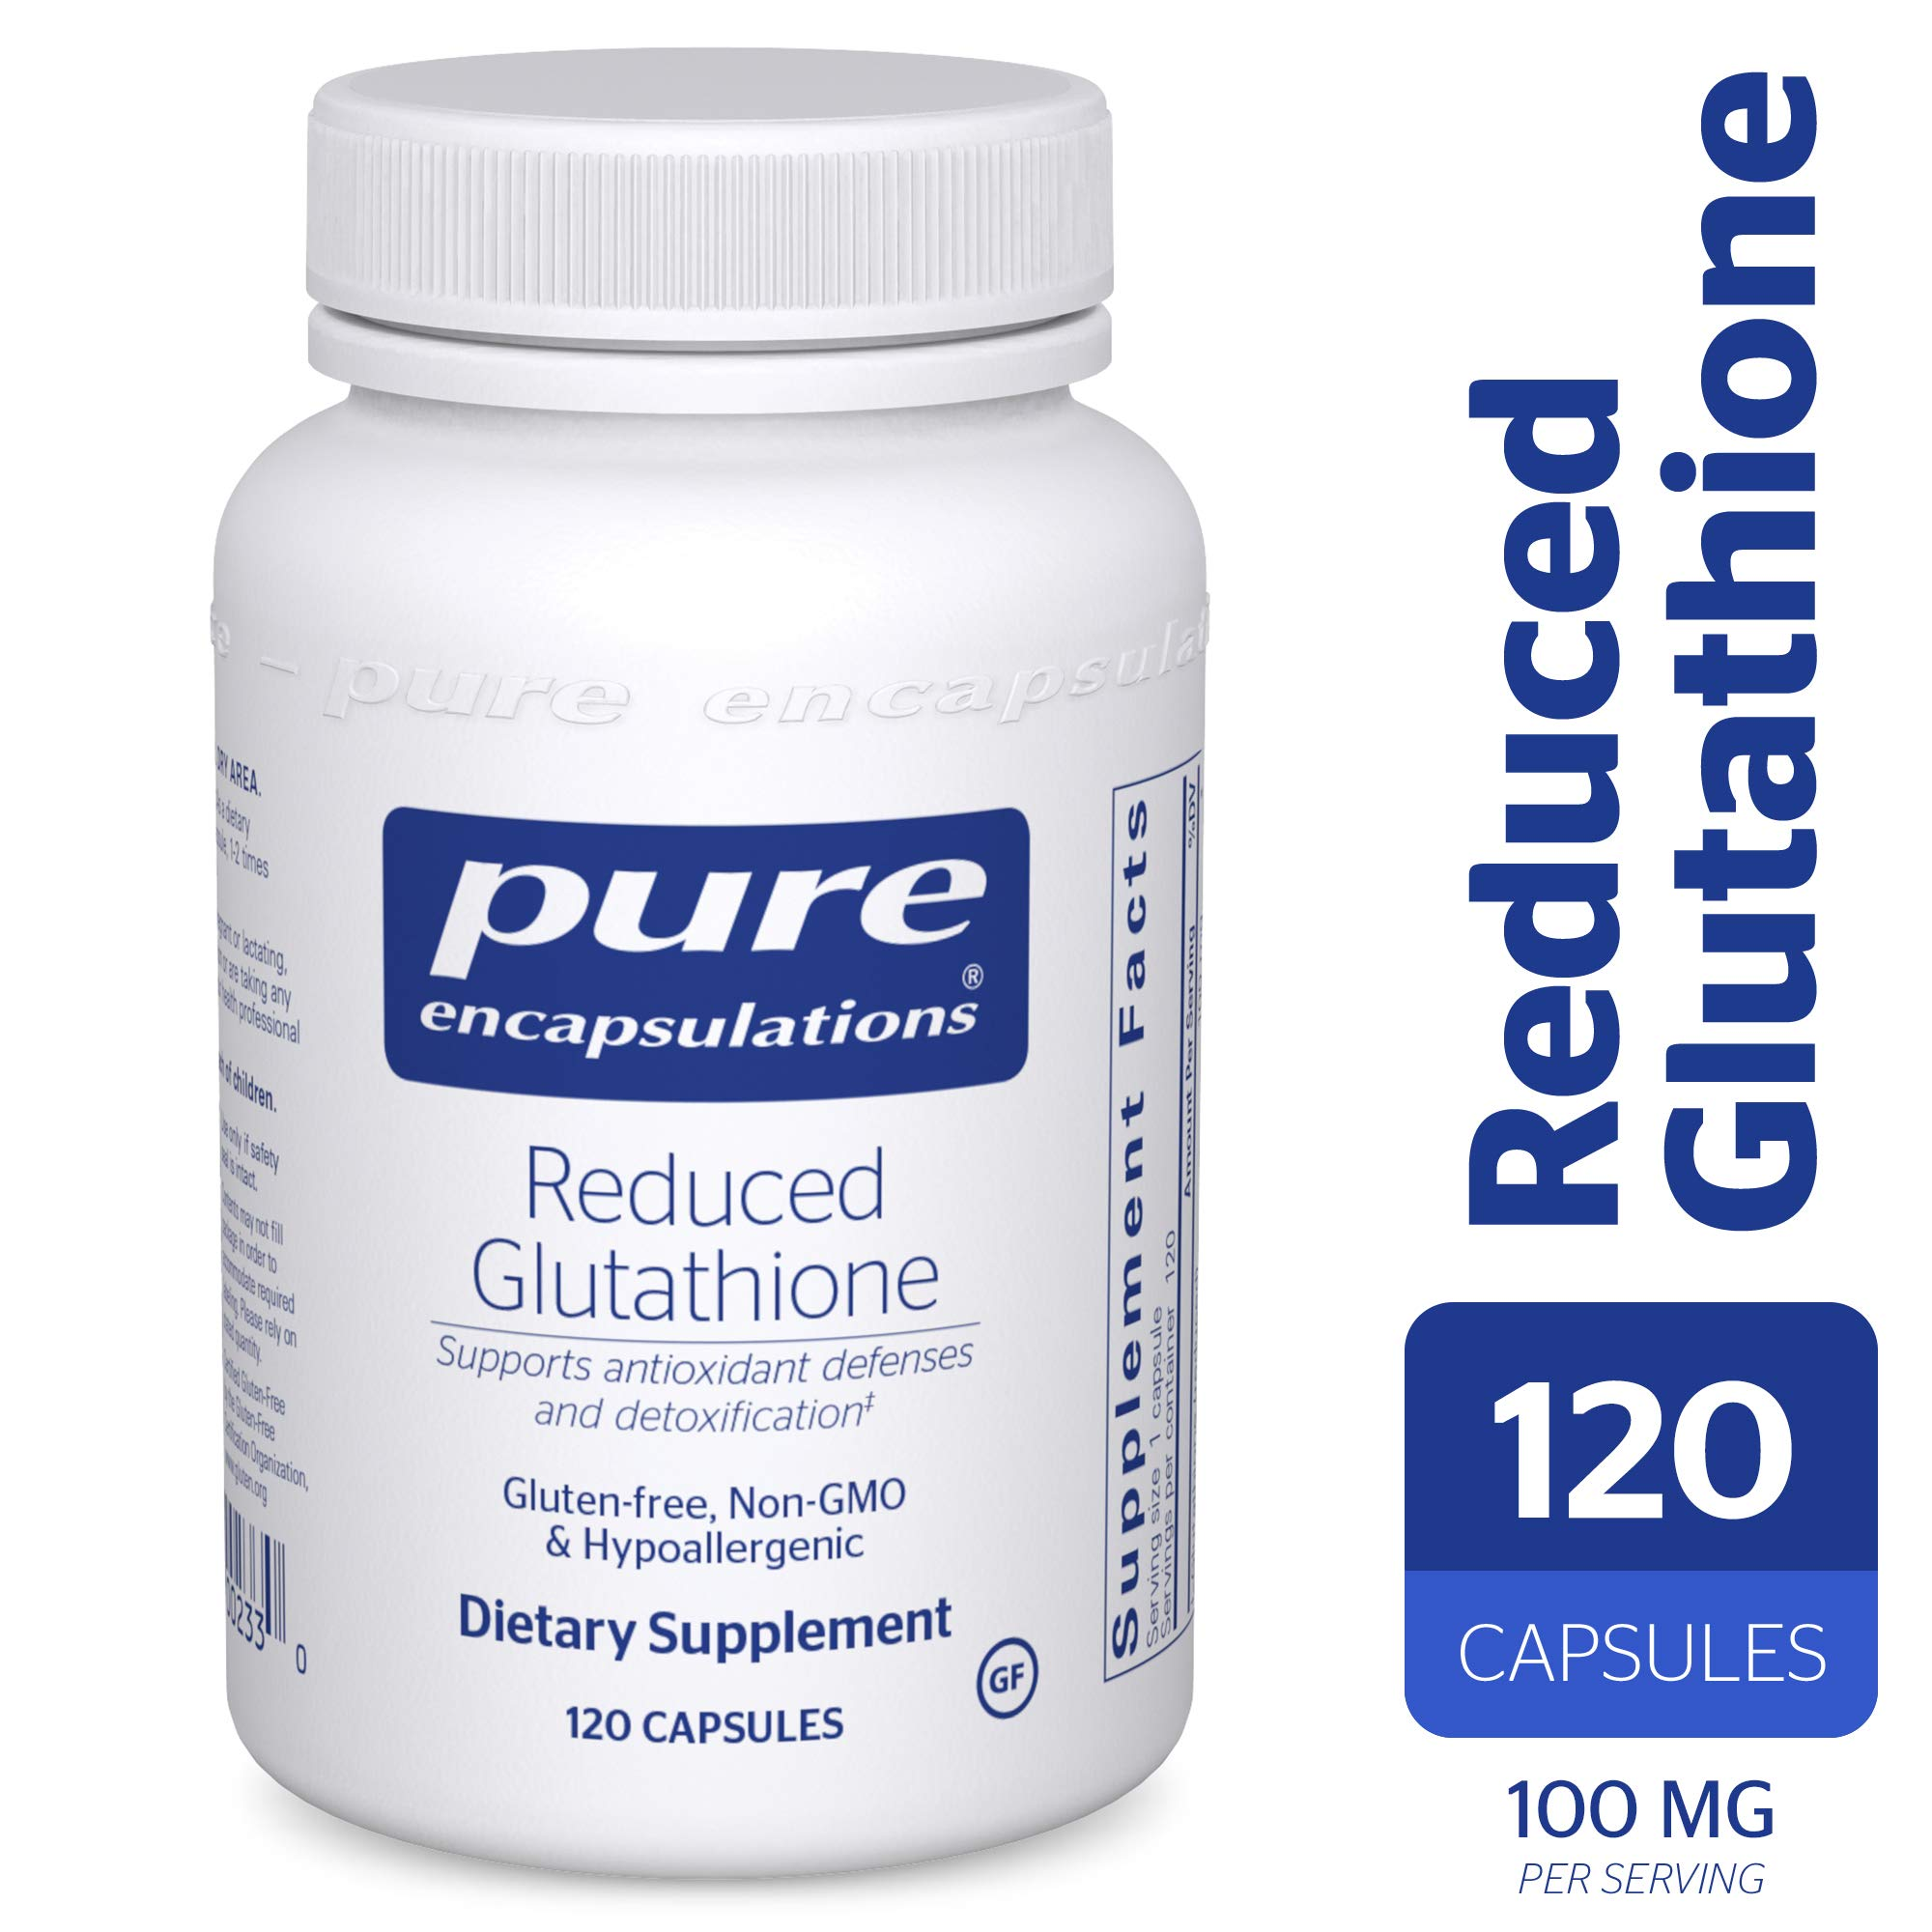 Pure Encapsulations - Reduced Glutathione - Hypoallergenic Antioxidant Supplement for Cell Health and Liver Function* - 120 Capsules by Pure Encapsulations